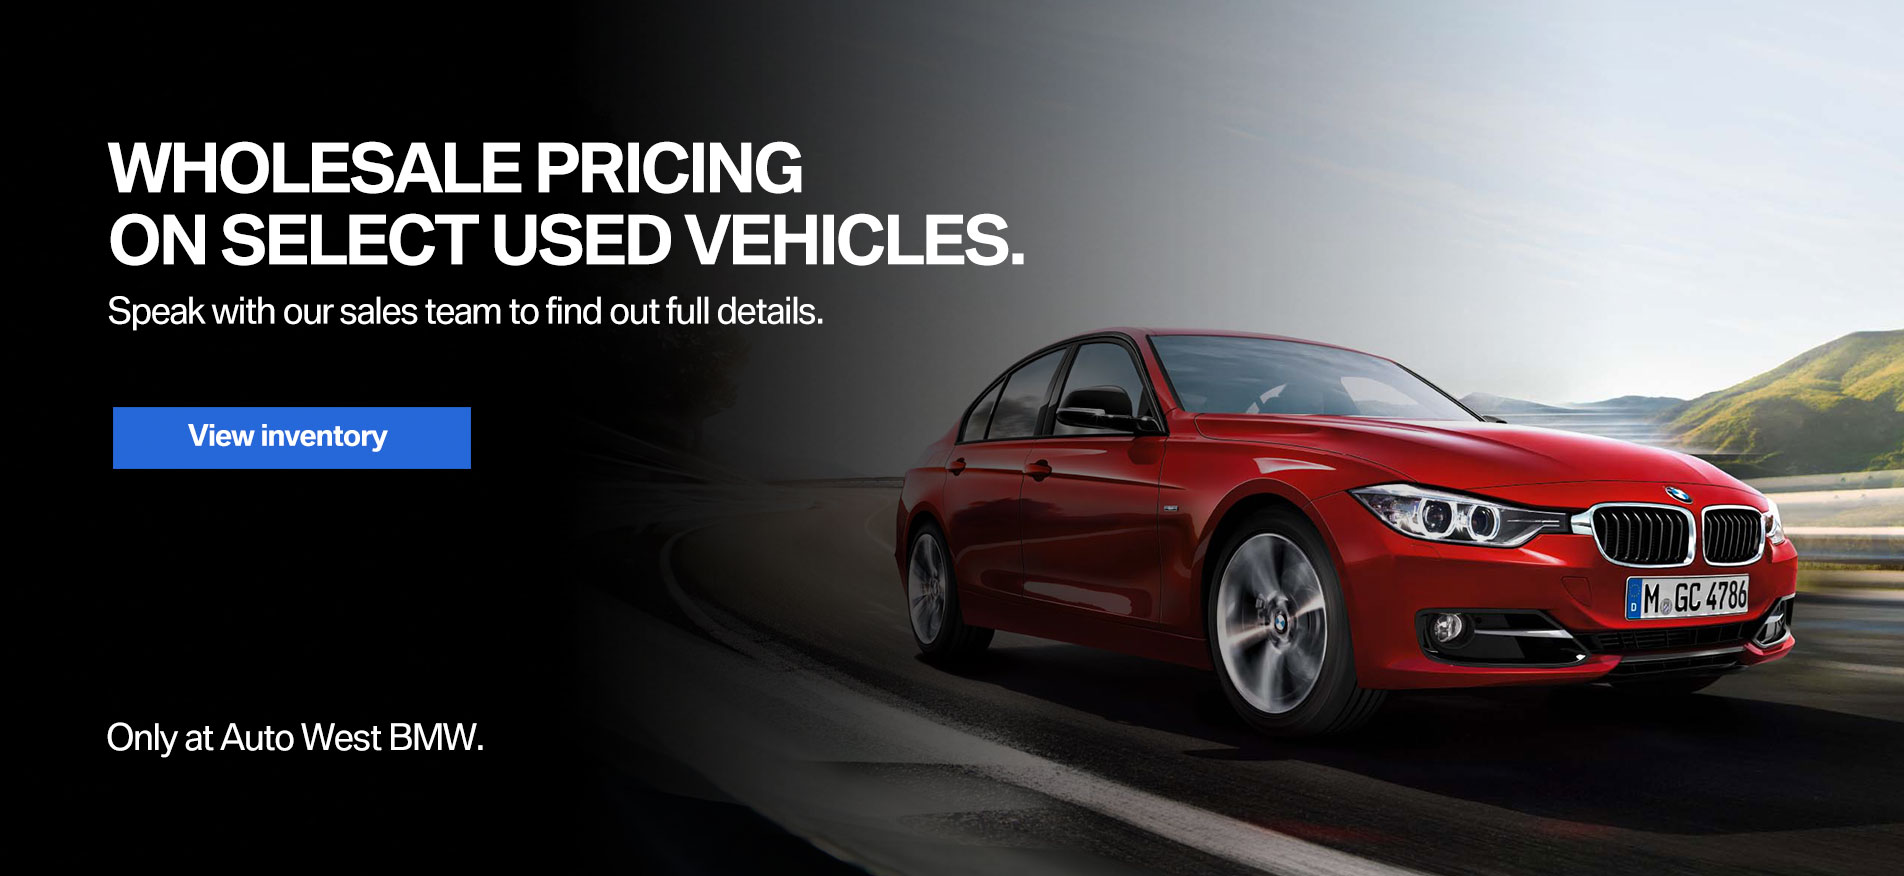 Auto West BMW Pre-Owned Wholesale Pricing